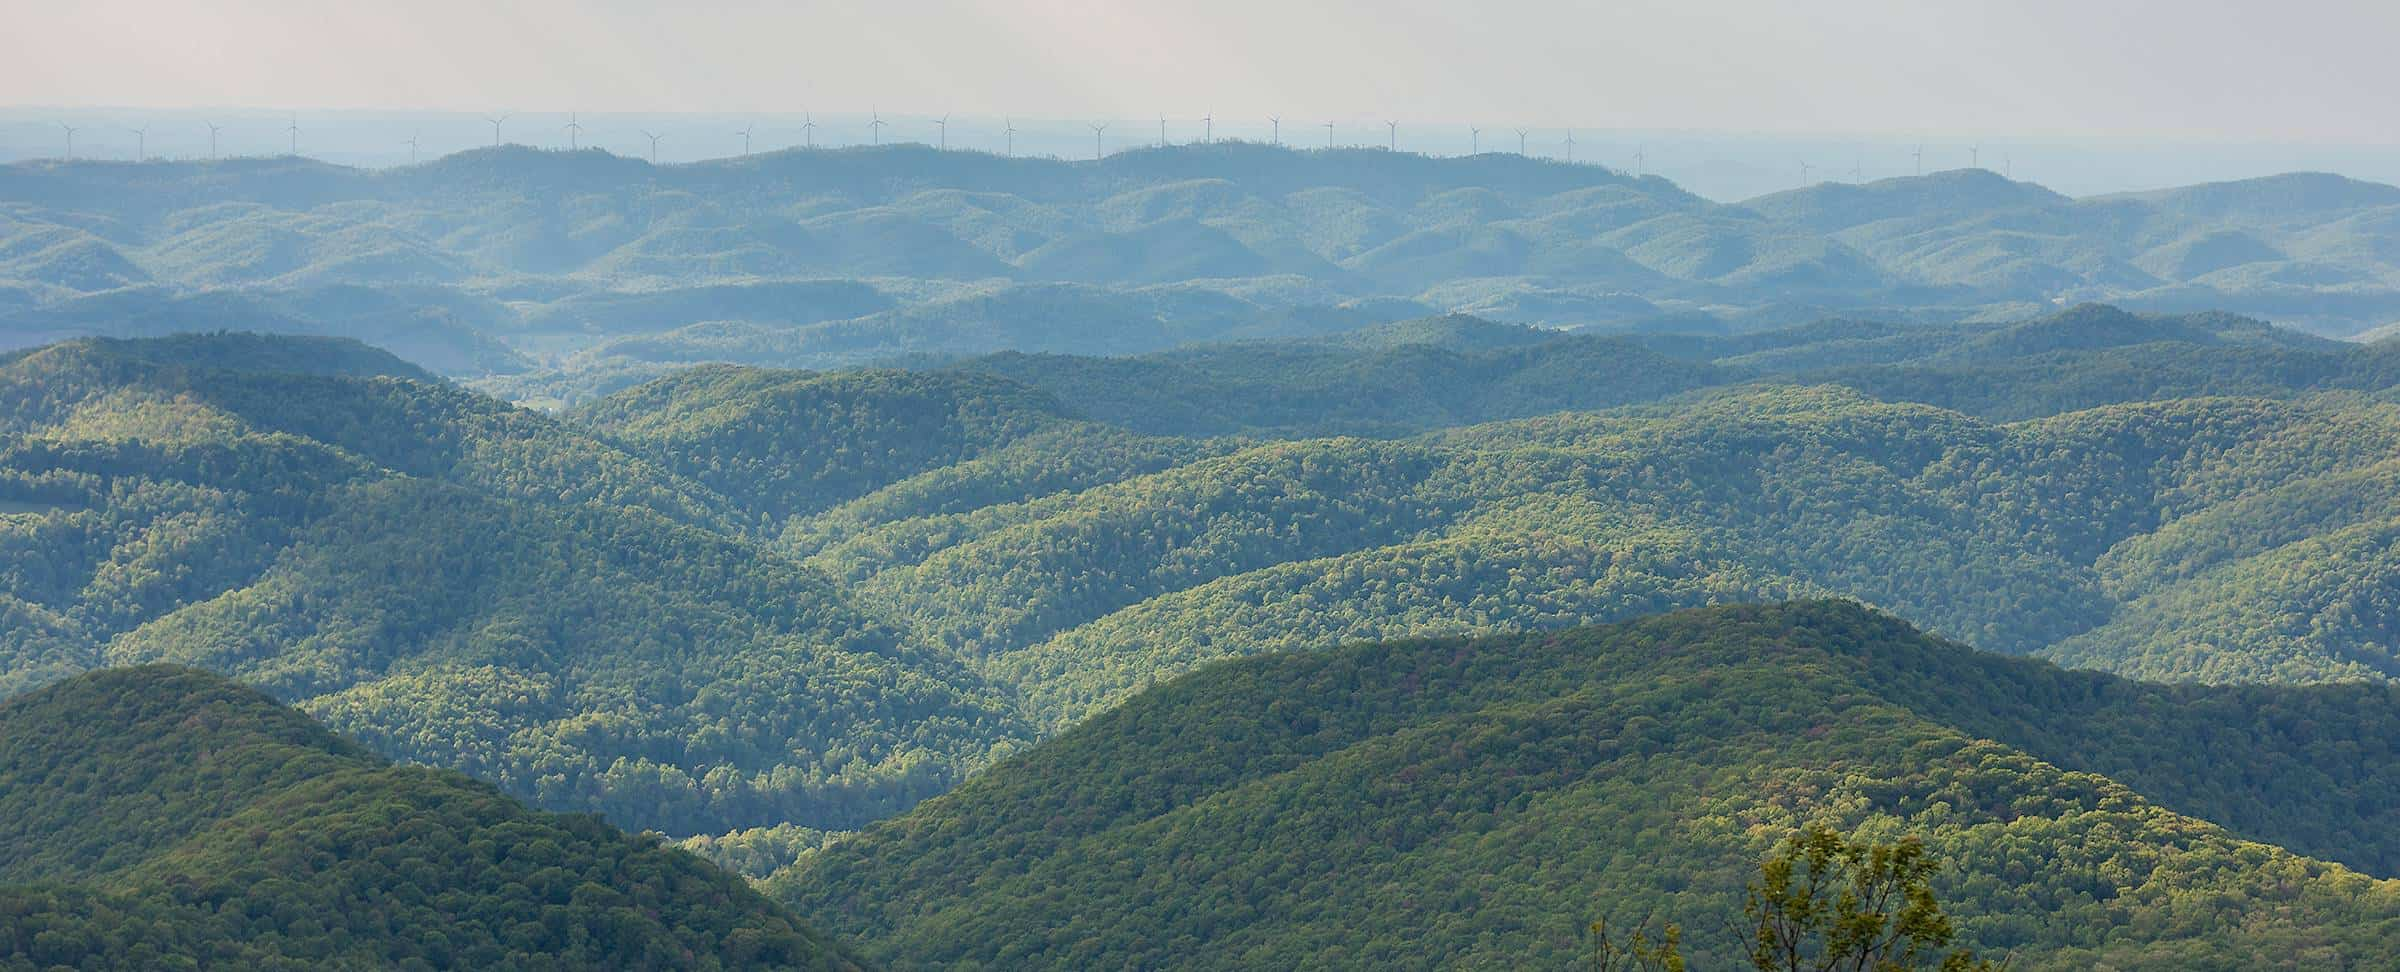 scenic forested hills with wind turbines on distant horizon